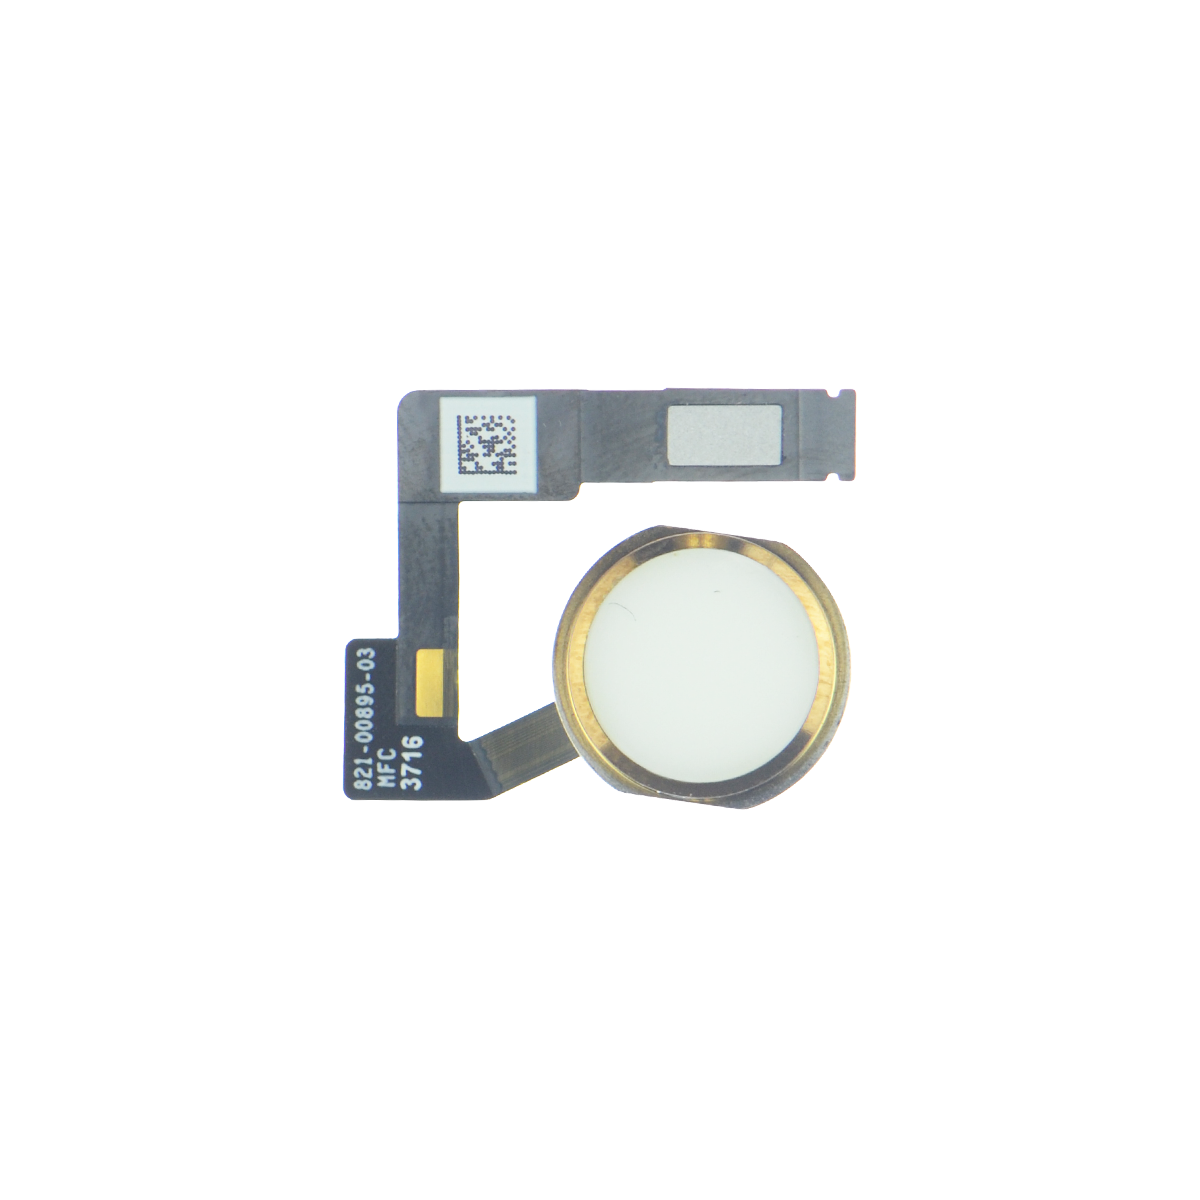 ipad-pro-10-5-home-button-touch-id-assembly-white-gold_S4VIH5044B7V.png